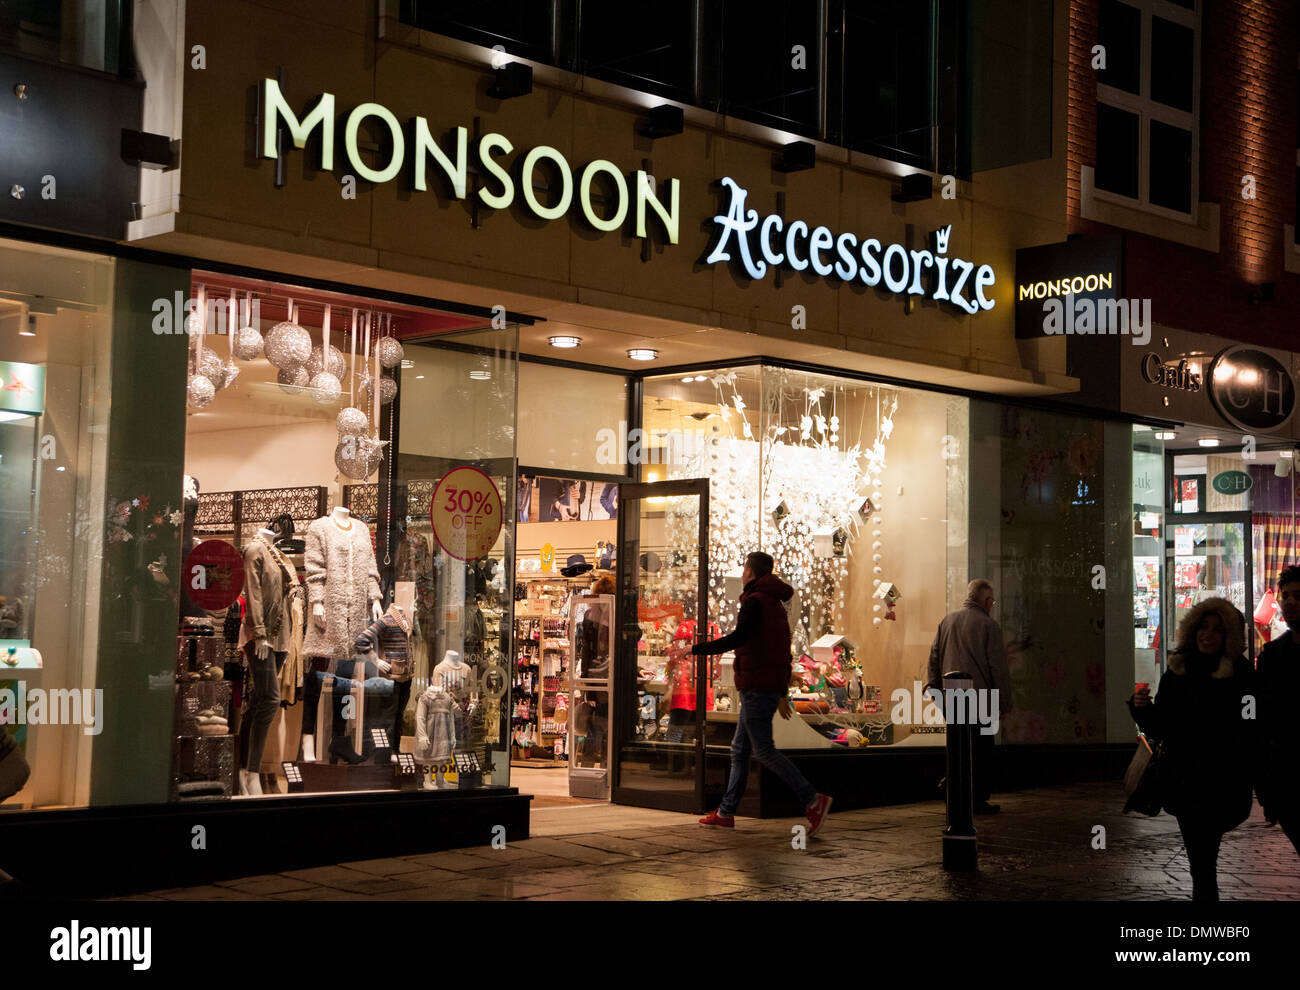 Shop Monsoon. We use cookies to provide you with the best experience. For full details, please see our cookie policy. accessories and holiday arrivals. SHOP ALL BEACH SHOP BEACH CLOTHING. All Abroad SHOP SWIMWEAR. Beach to Bar SHOP KAFTANS & COVER-UPS. In the Shade SHOP SUNGLASSES. Sun-Catching Jewels.